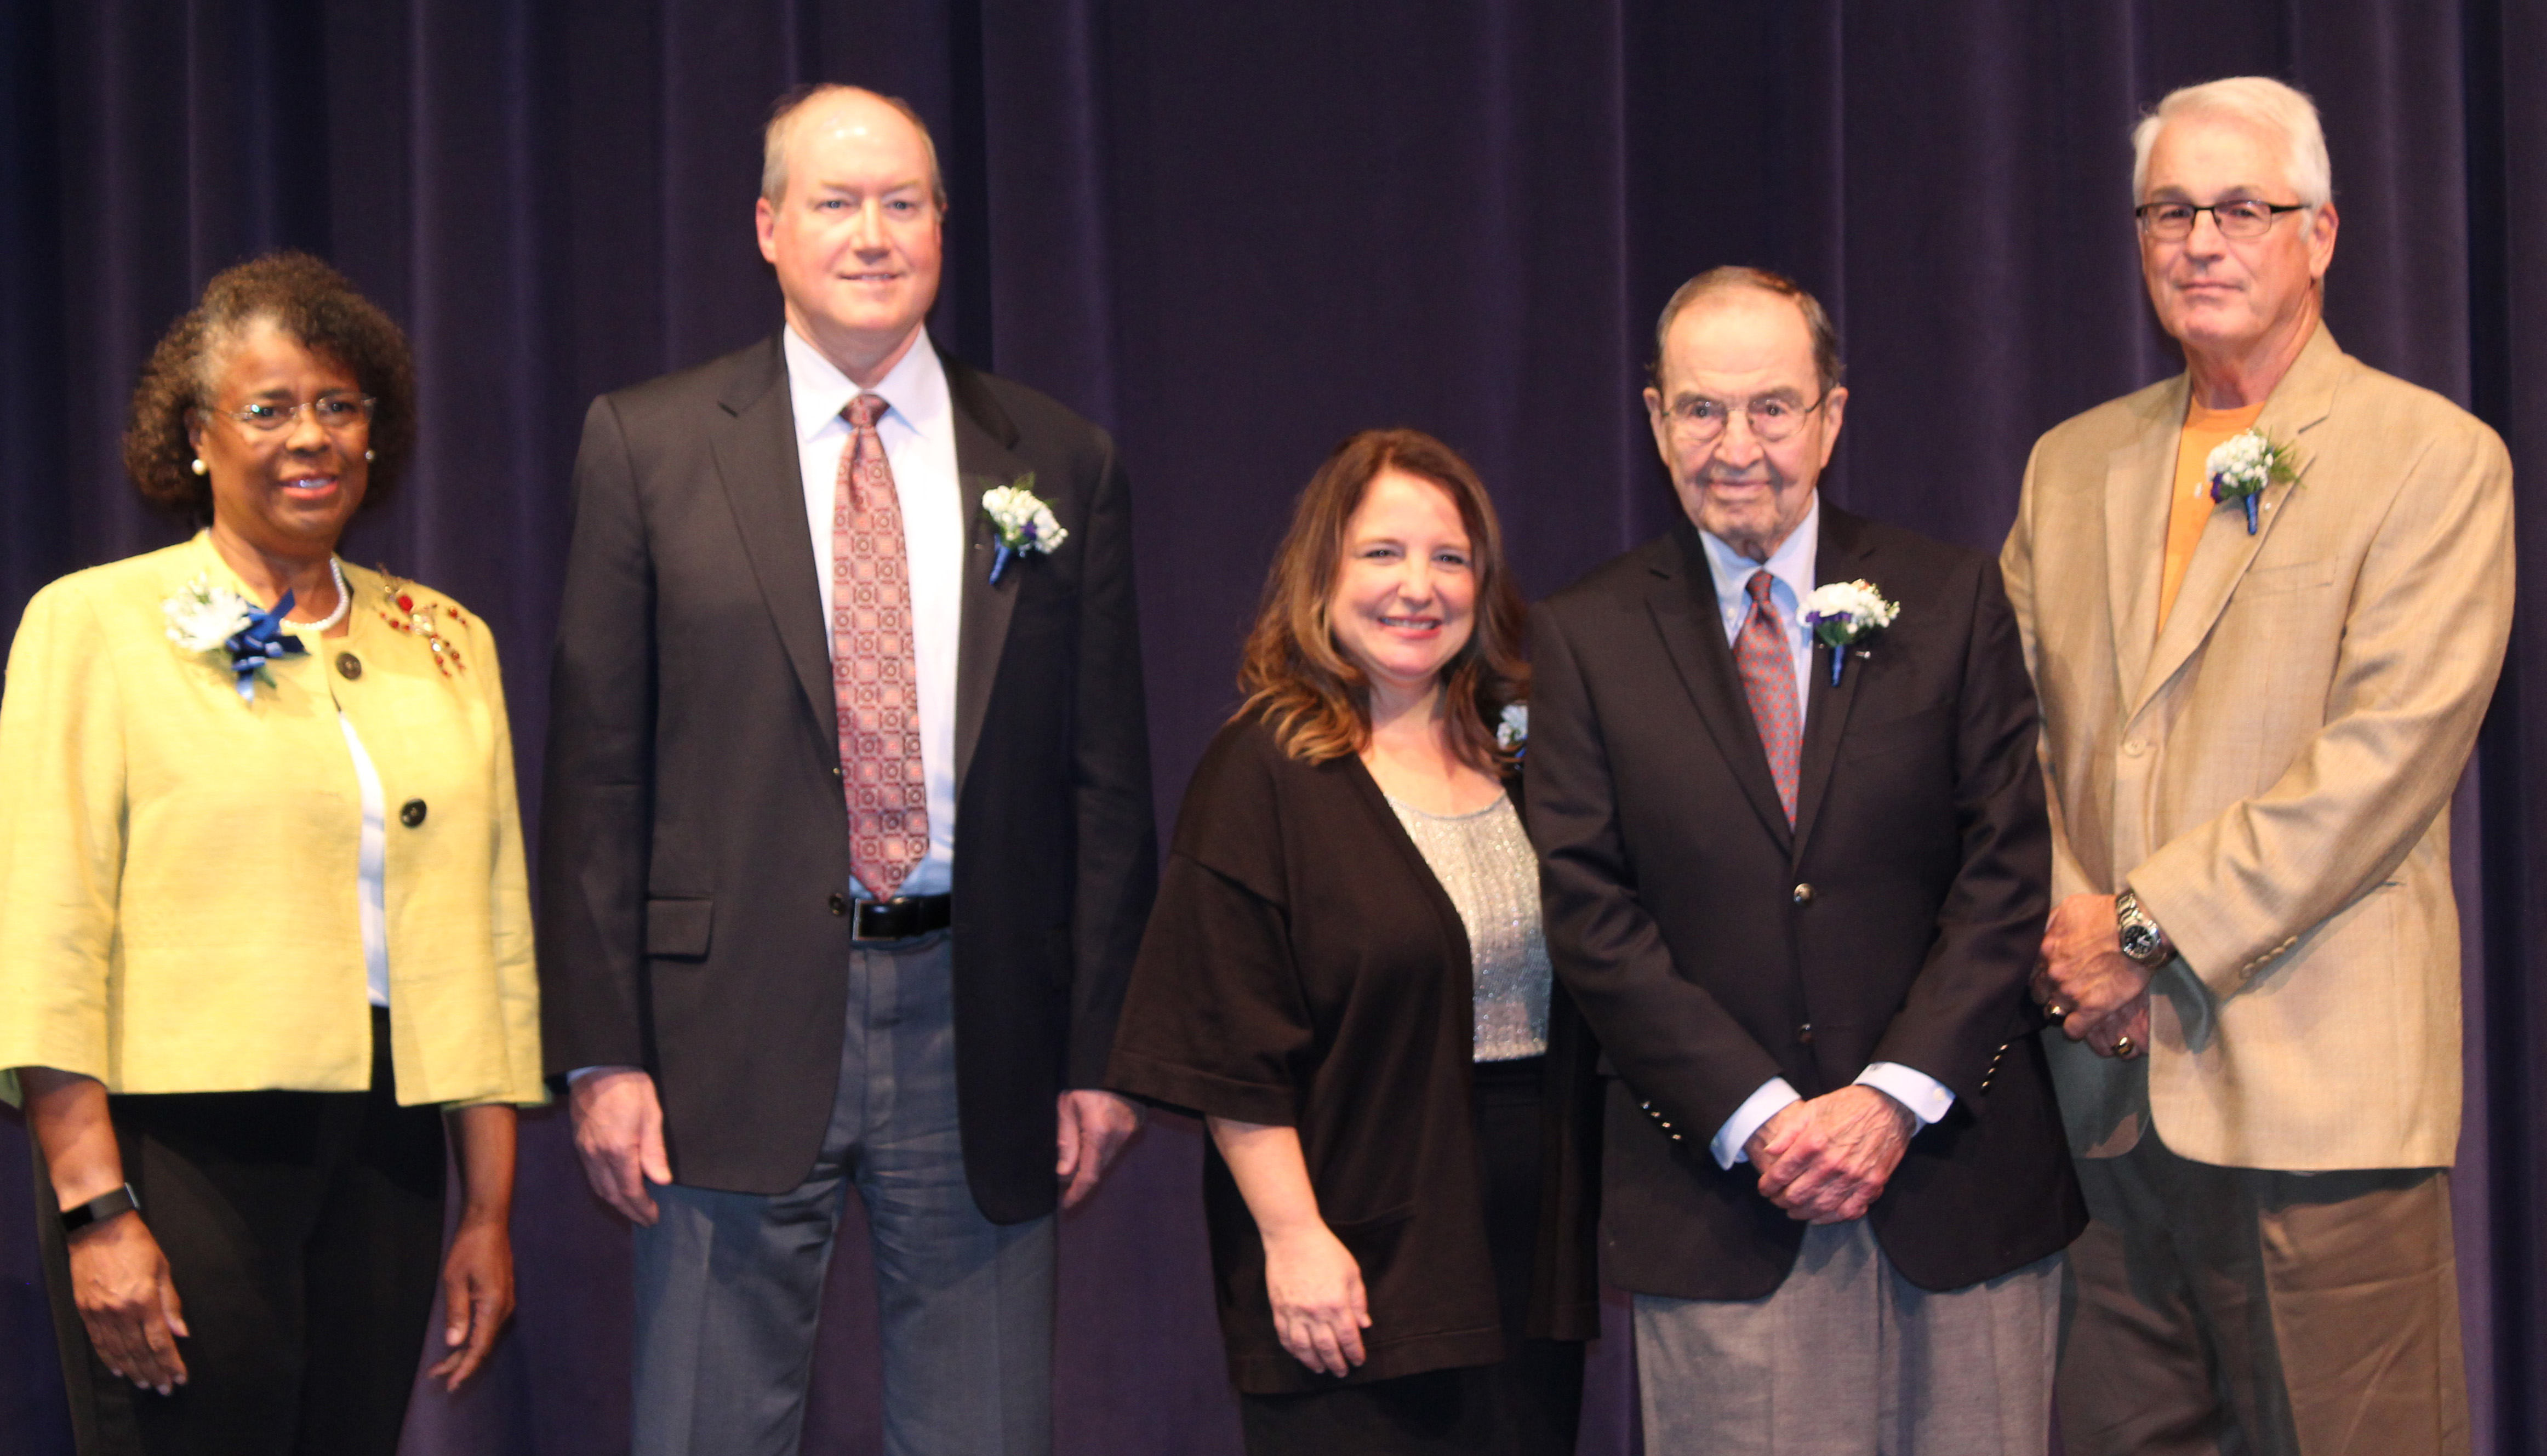 AHS Outstanding Alumni Recognized